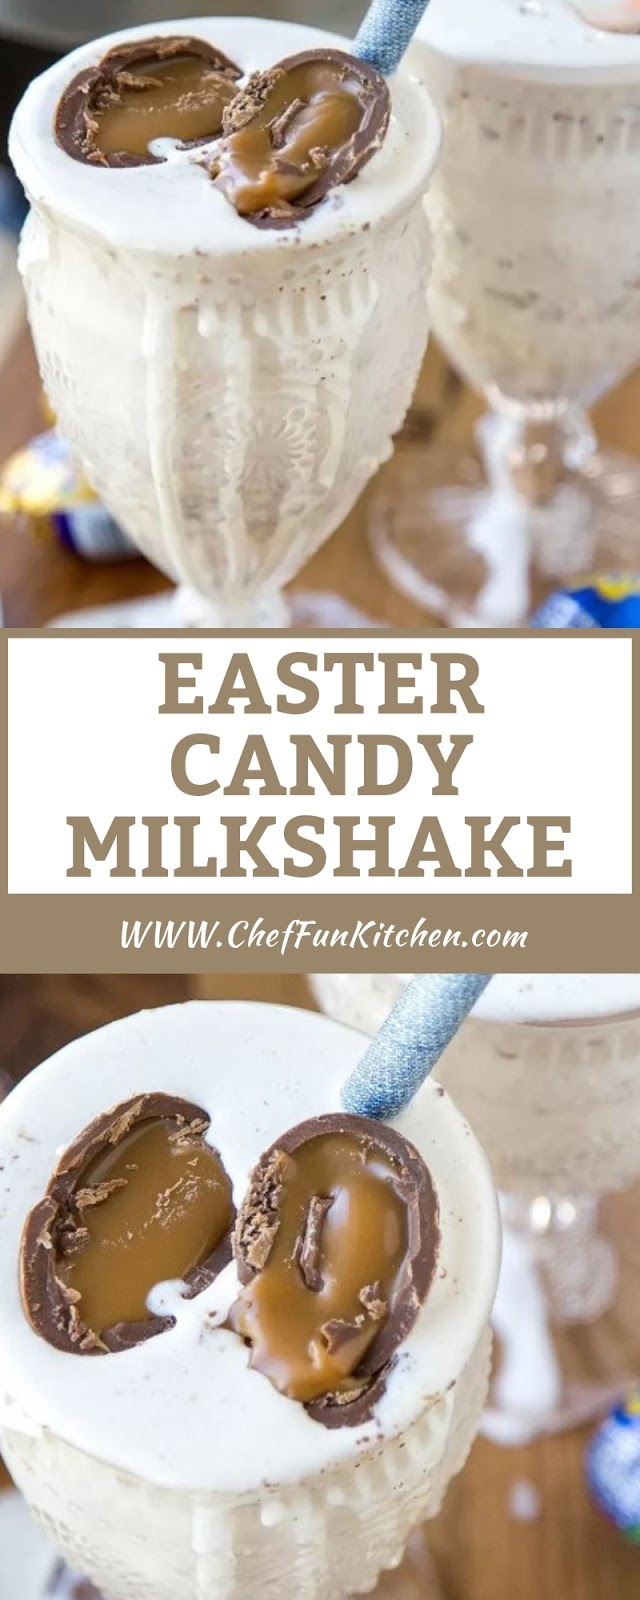 EASTER CANDY MILKSHAKE